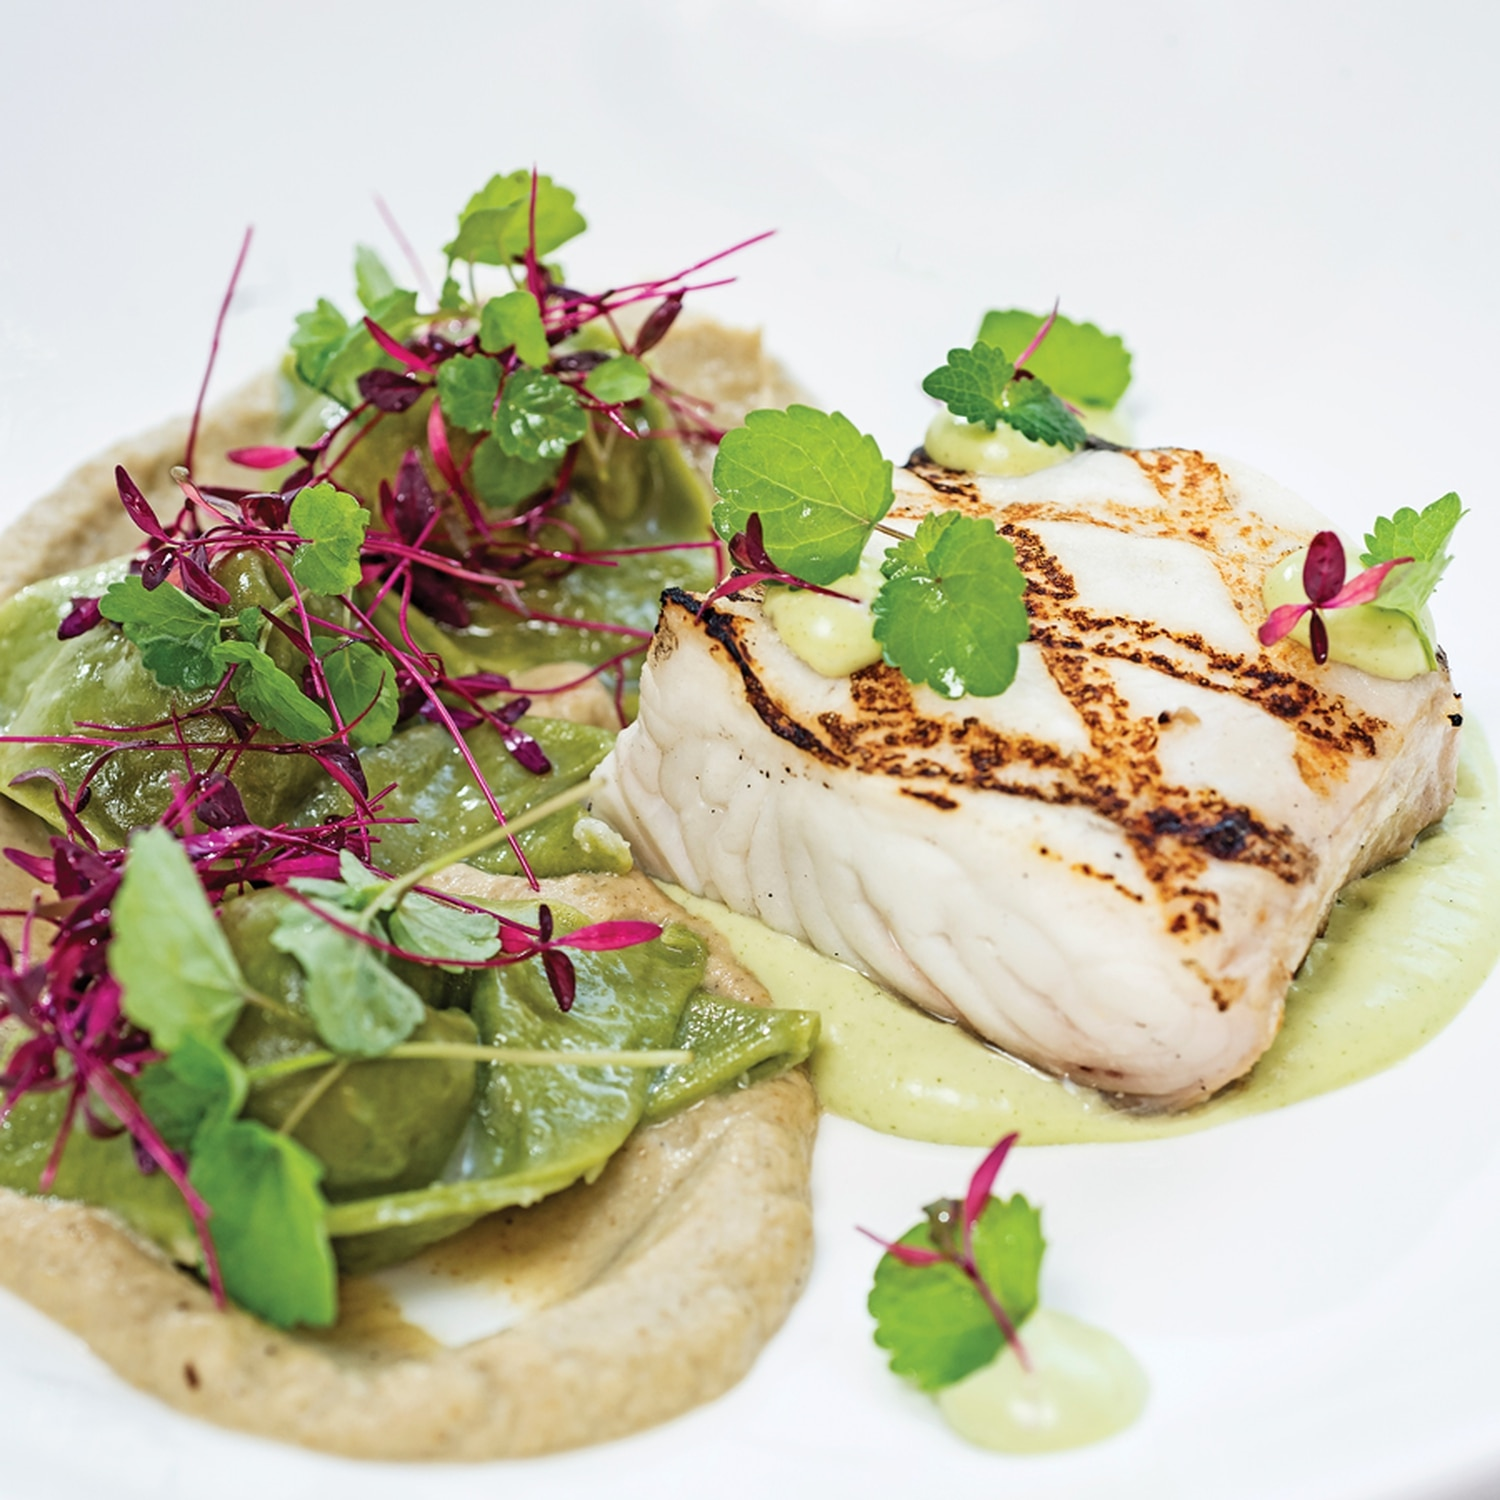 Grilled halibut with shrimp and corn tortellini, eggplant purée, mint and yogurt emulsion, and anise hyssop